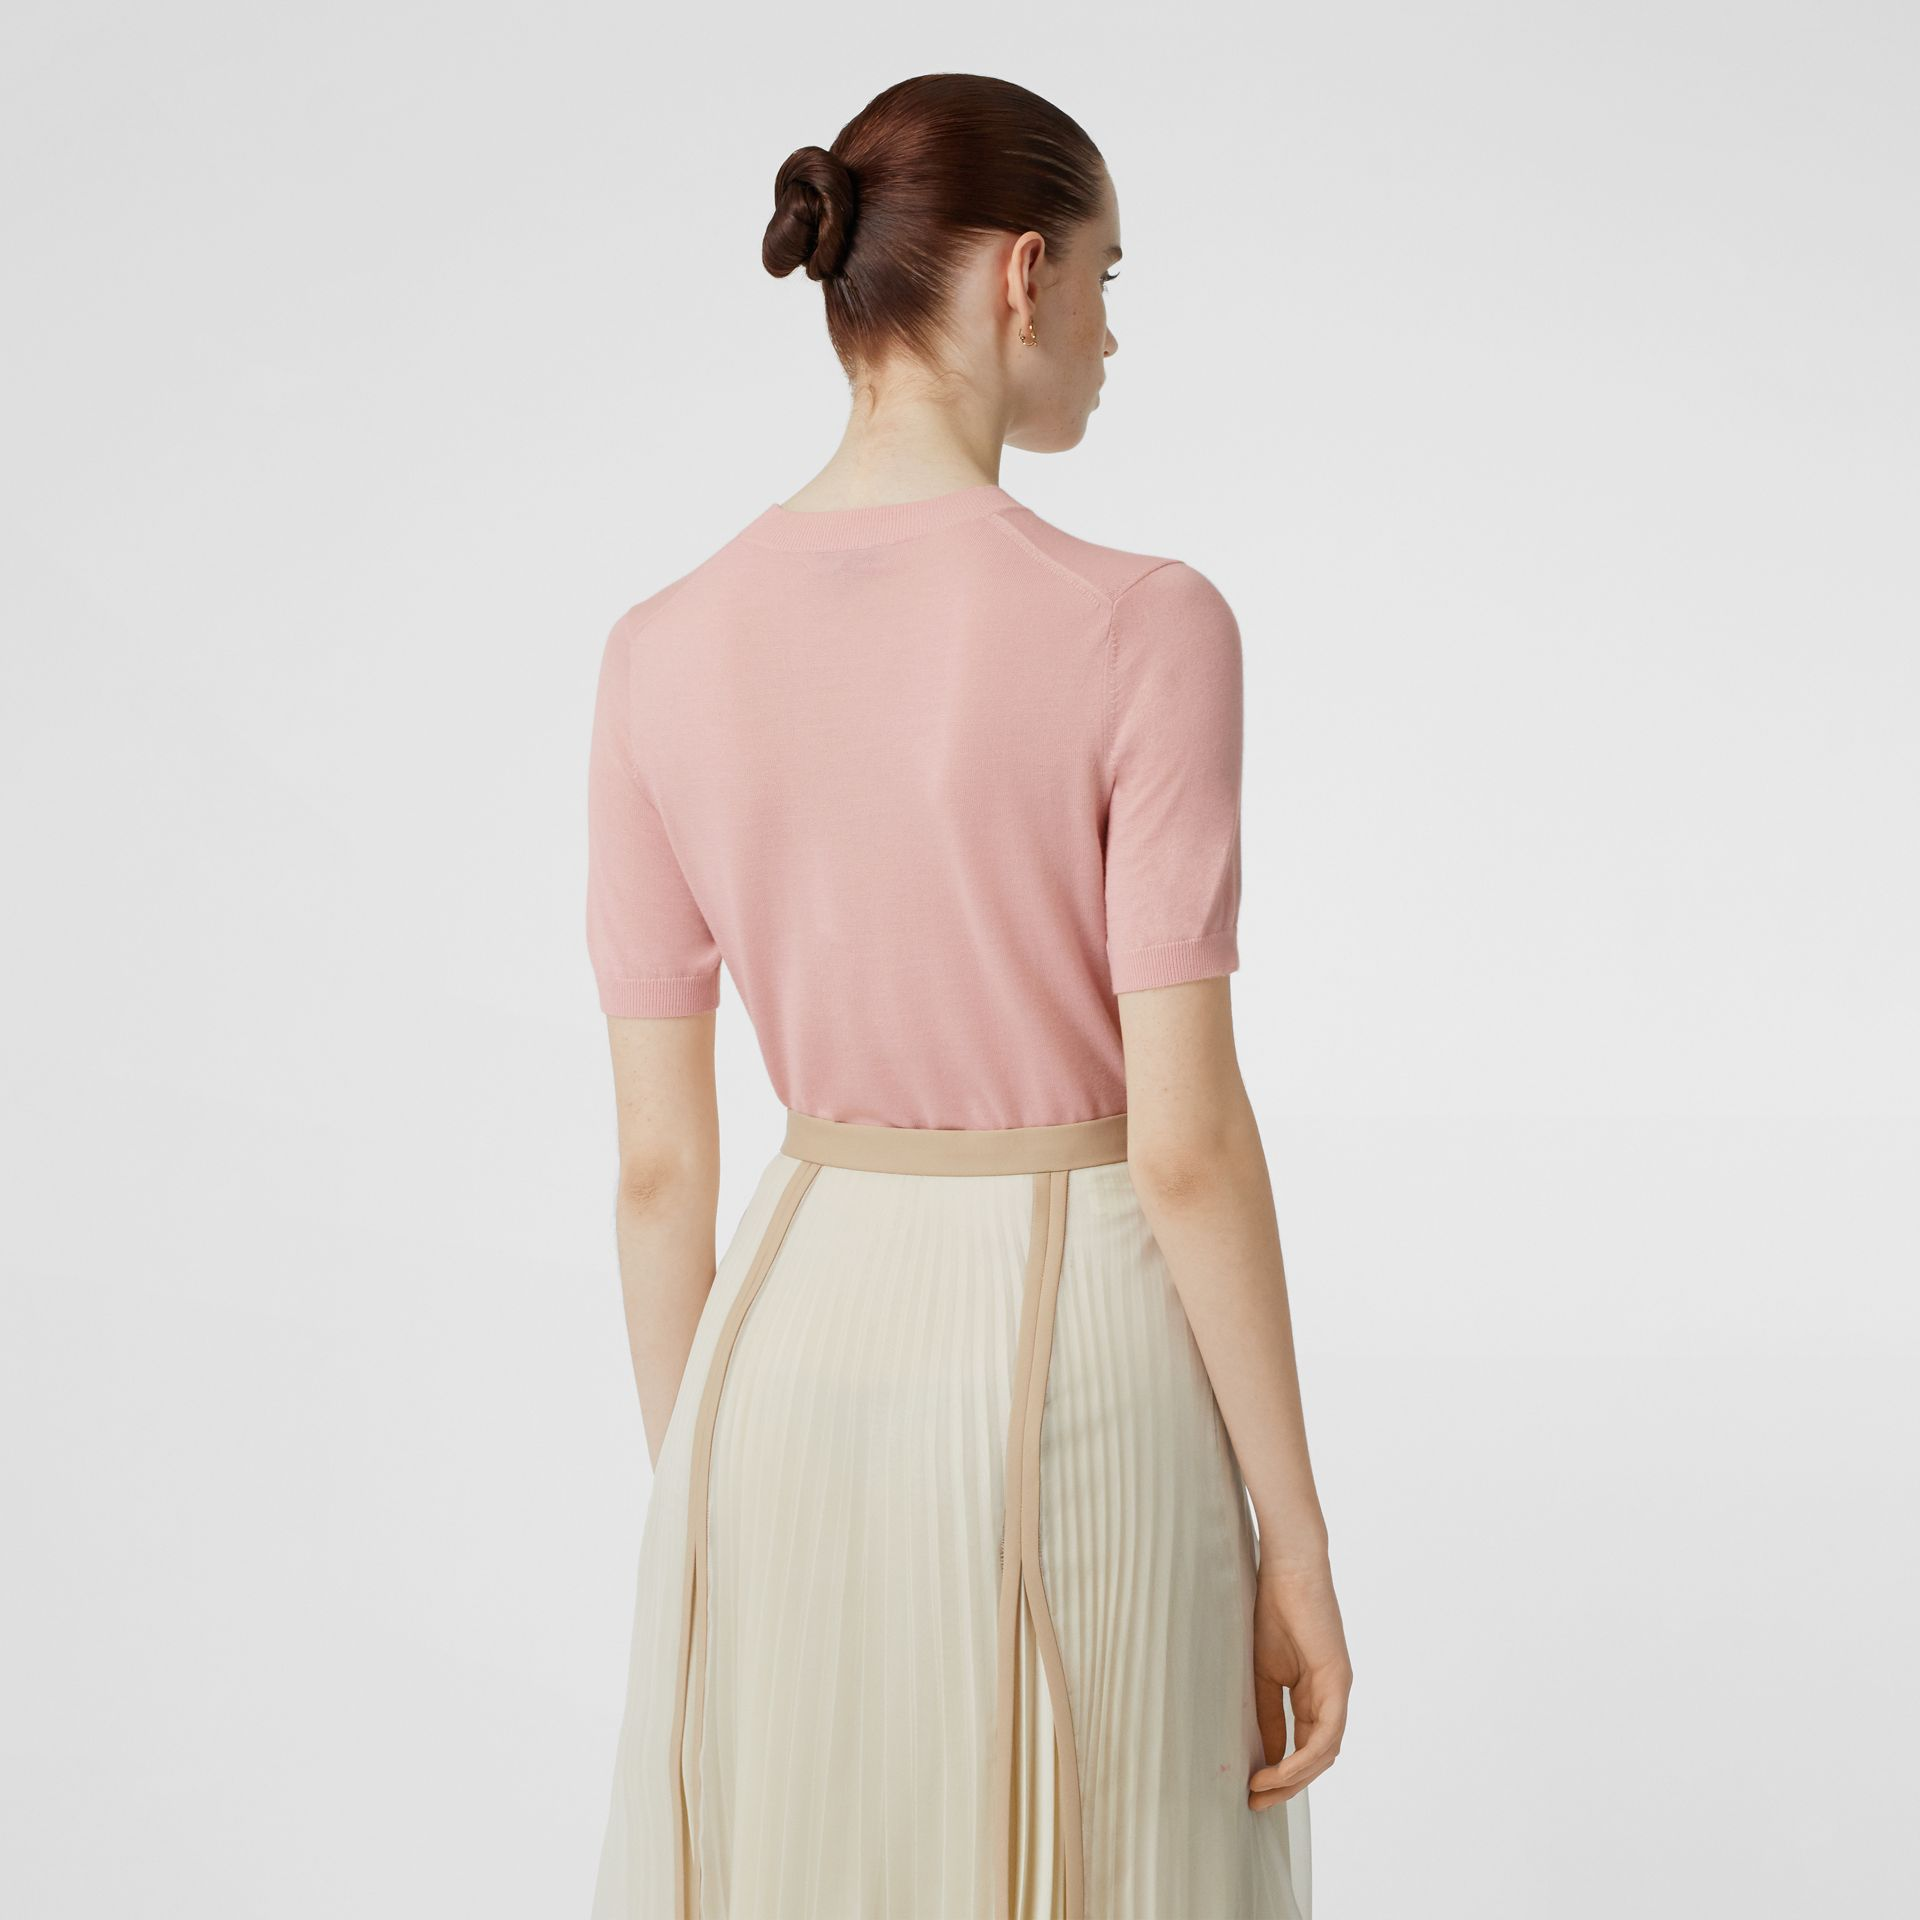 Monogram Motif Cashmere Top in Pink - Women | Burberry United States - gallery image 2